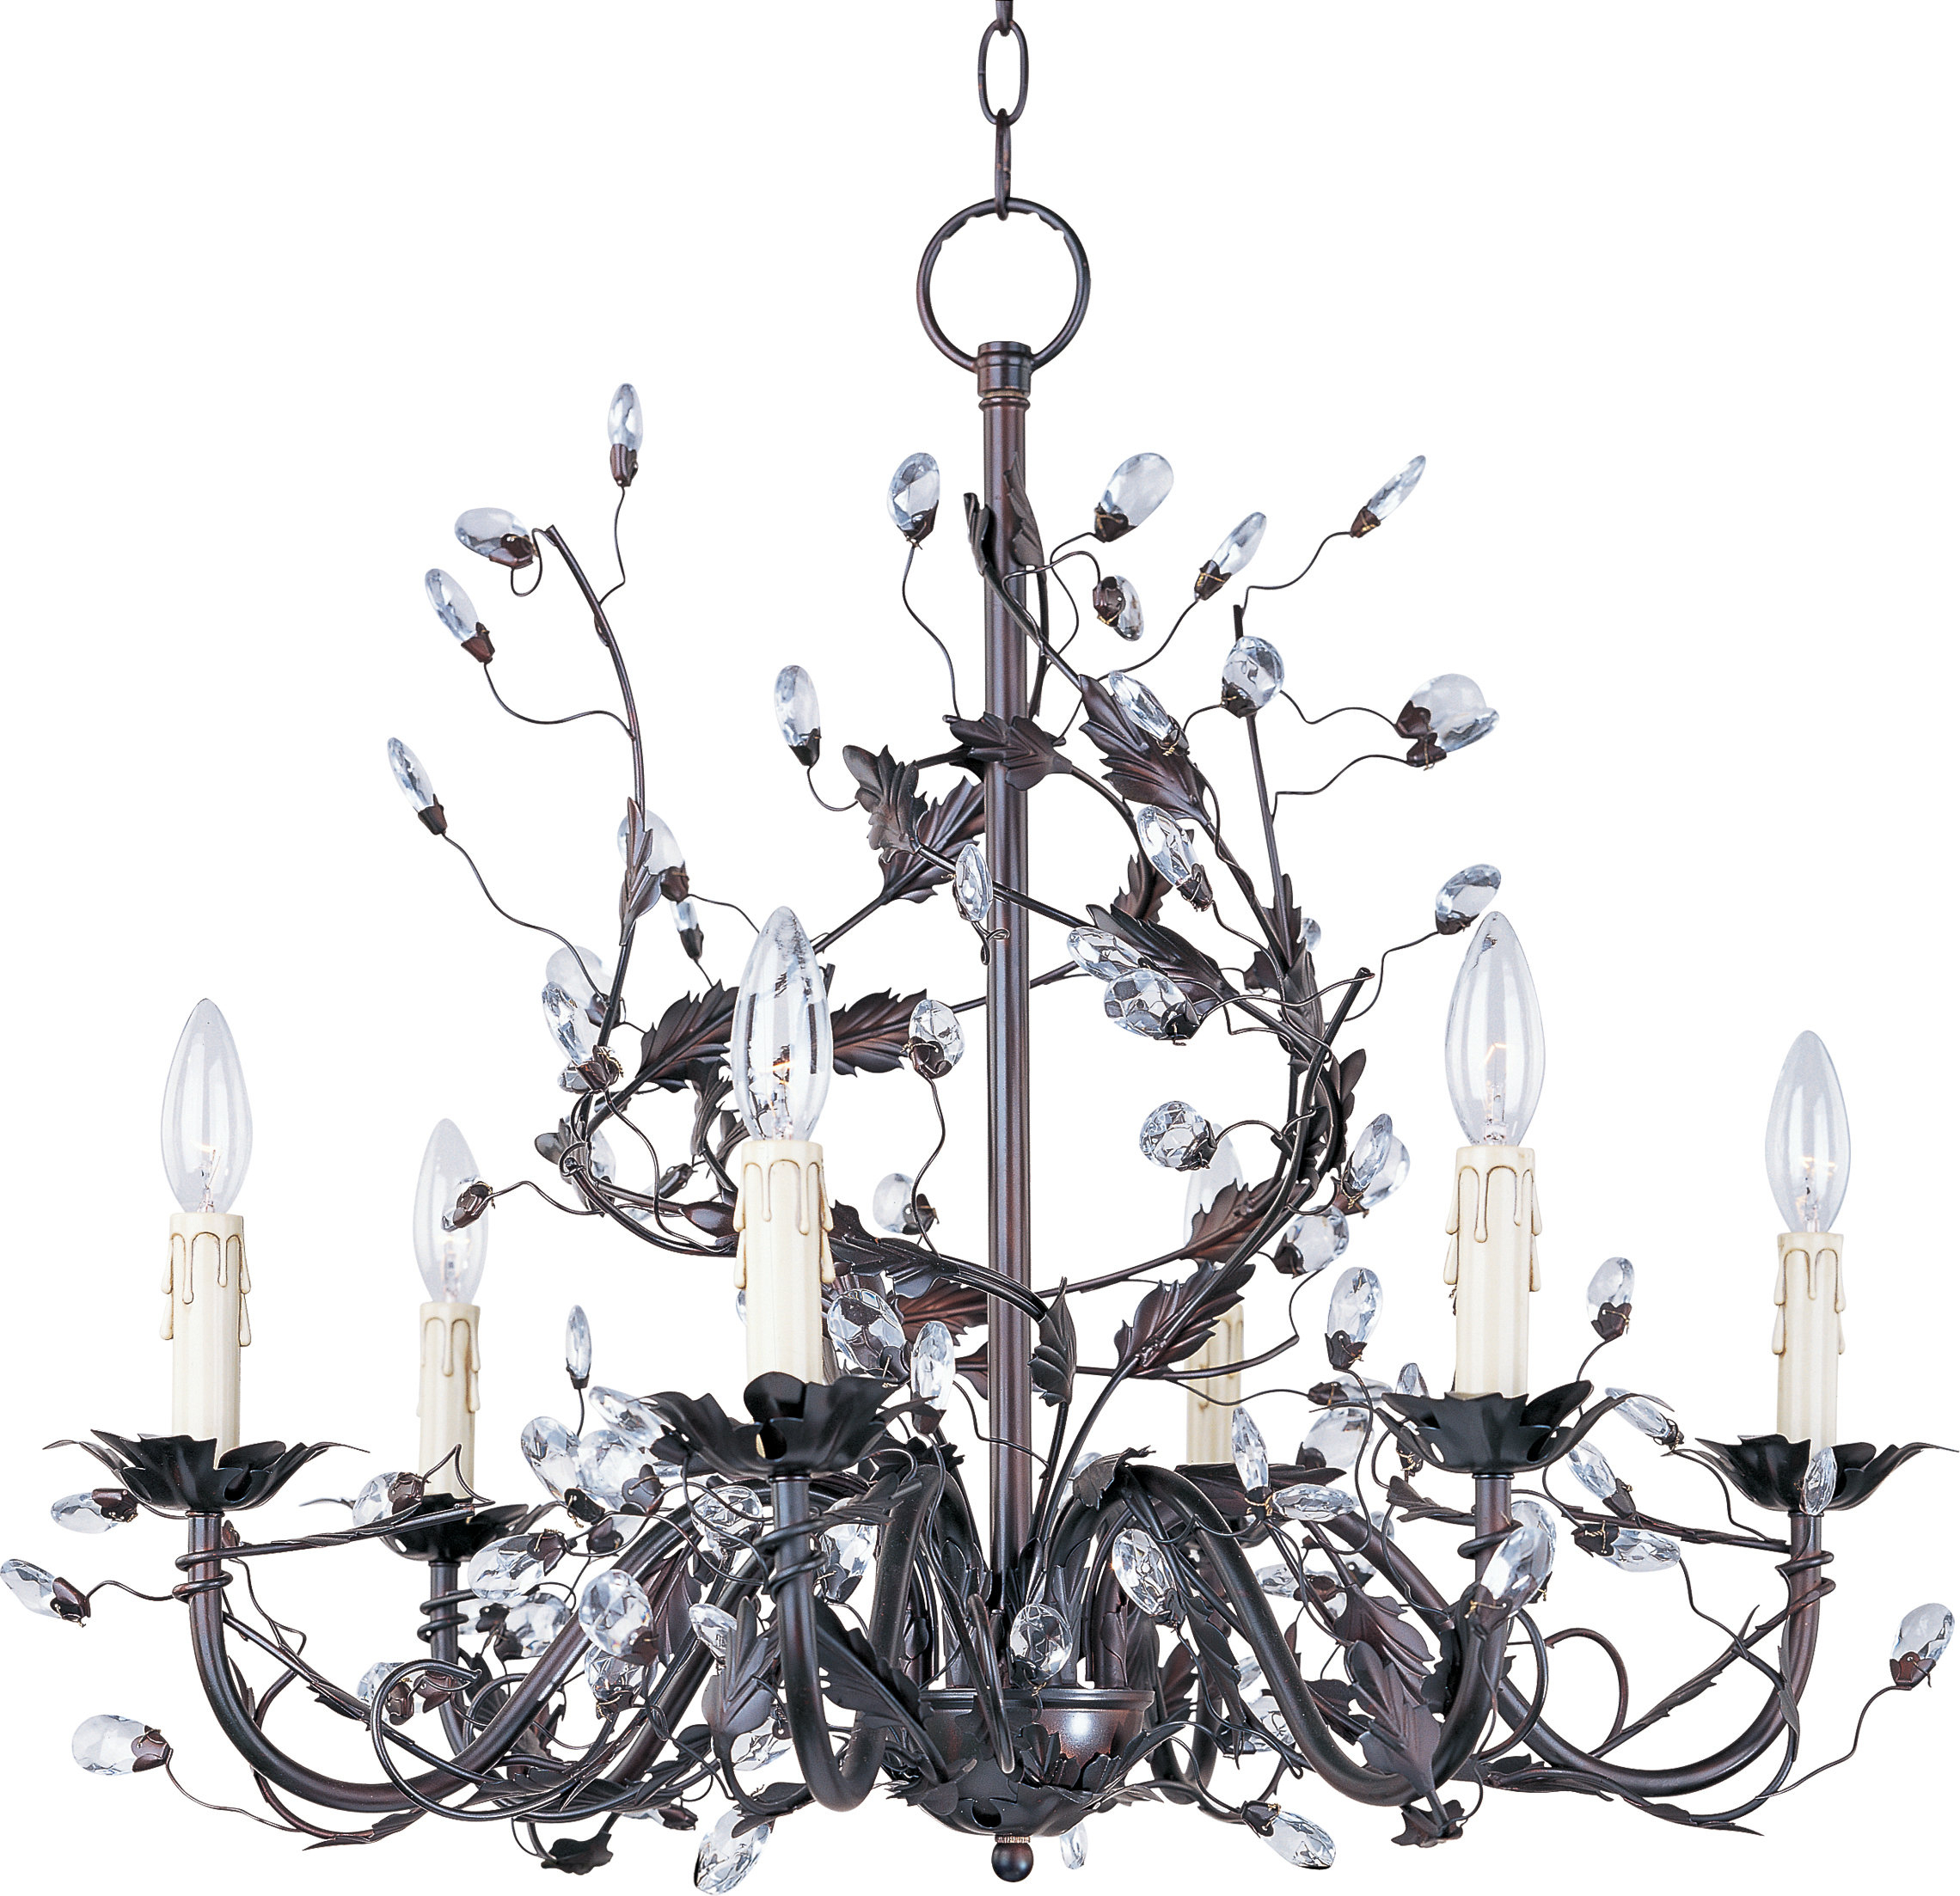 Hesse 5 Light Candle Style Chandeliers With Regard To Recent Kaiya 6 Light Candle Style Chandelier (View 13 of 20)